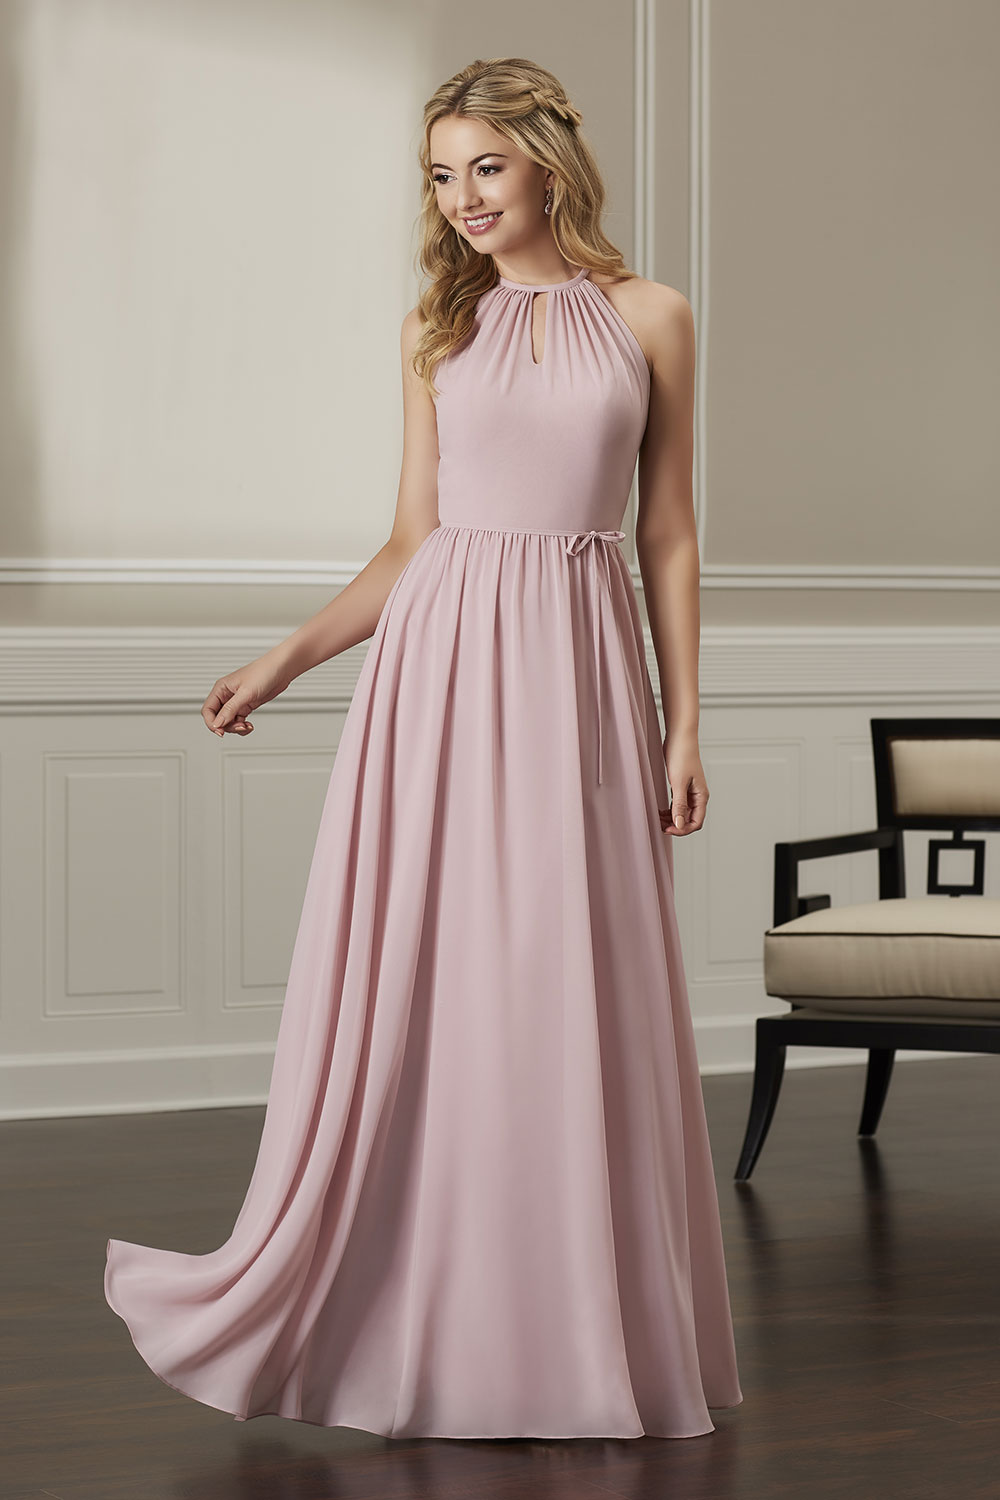 bridesmaid-dresses-jacquelin-bridals-canada-26832